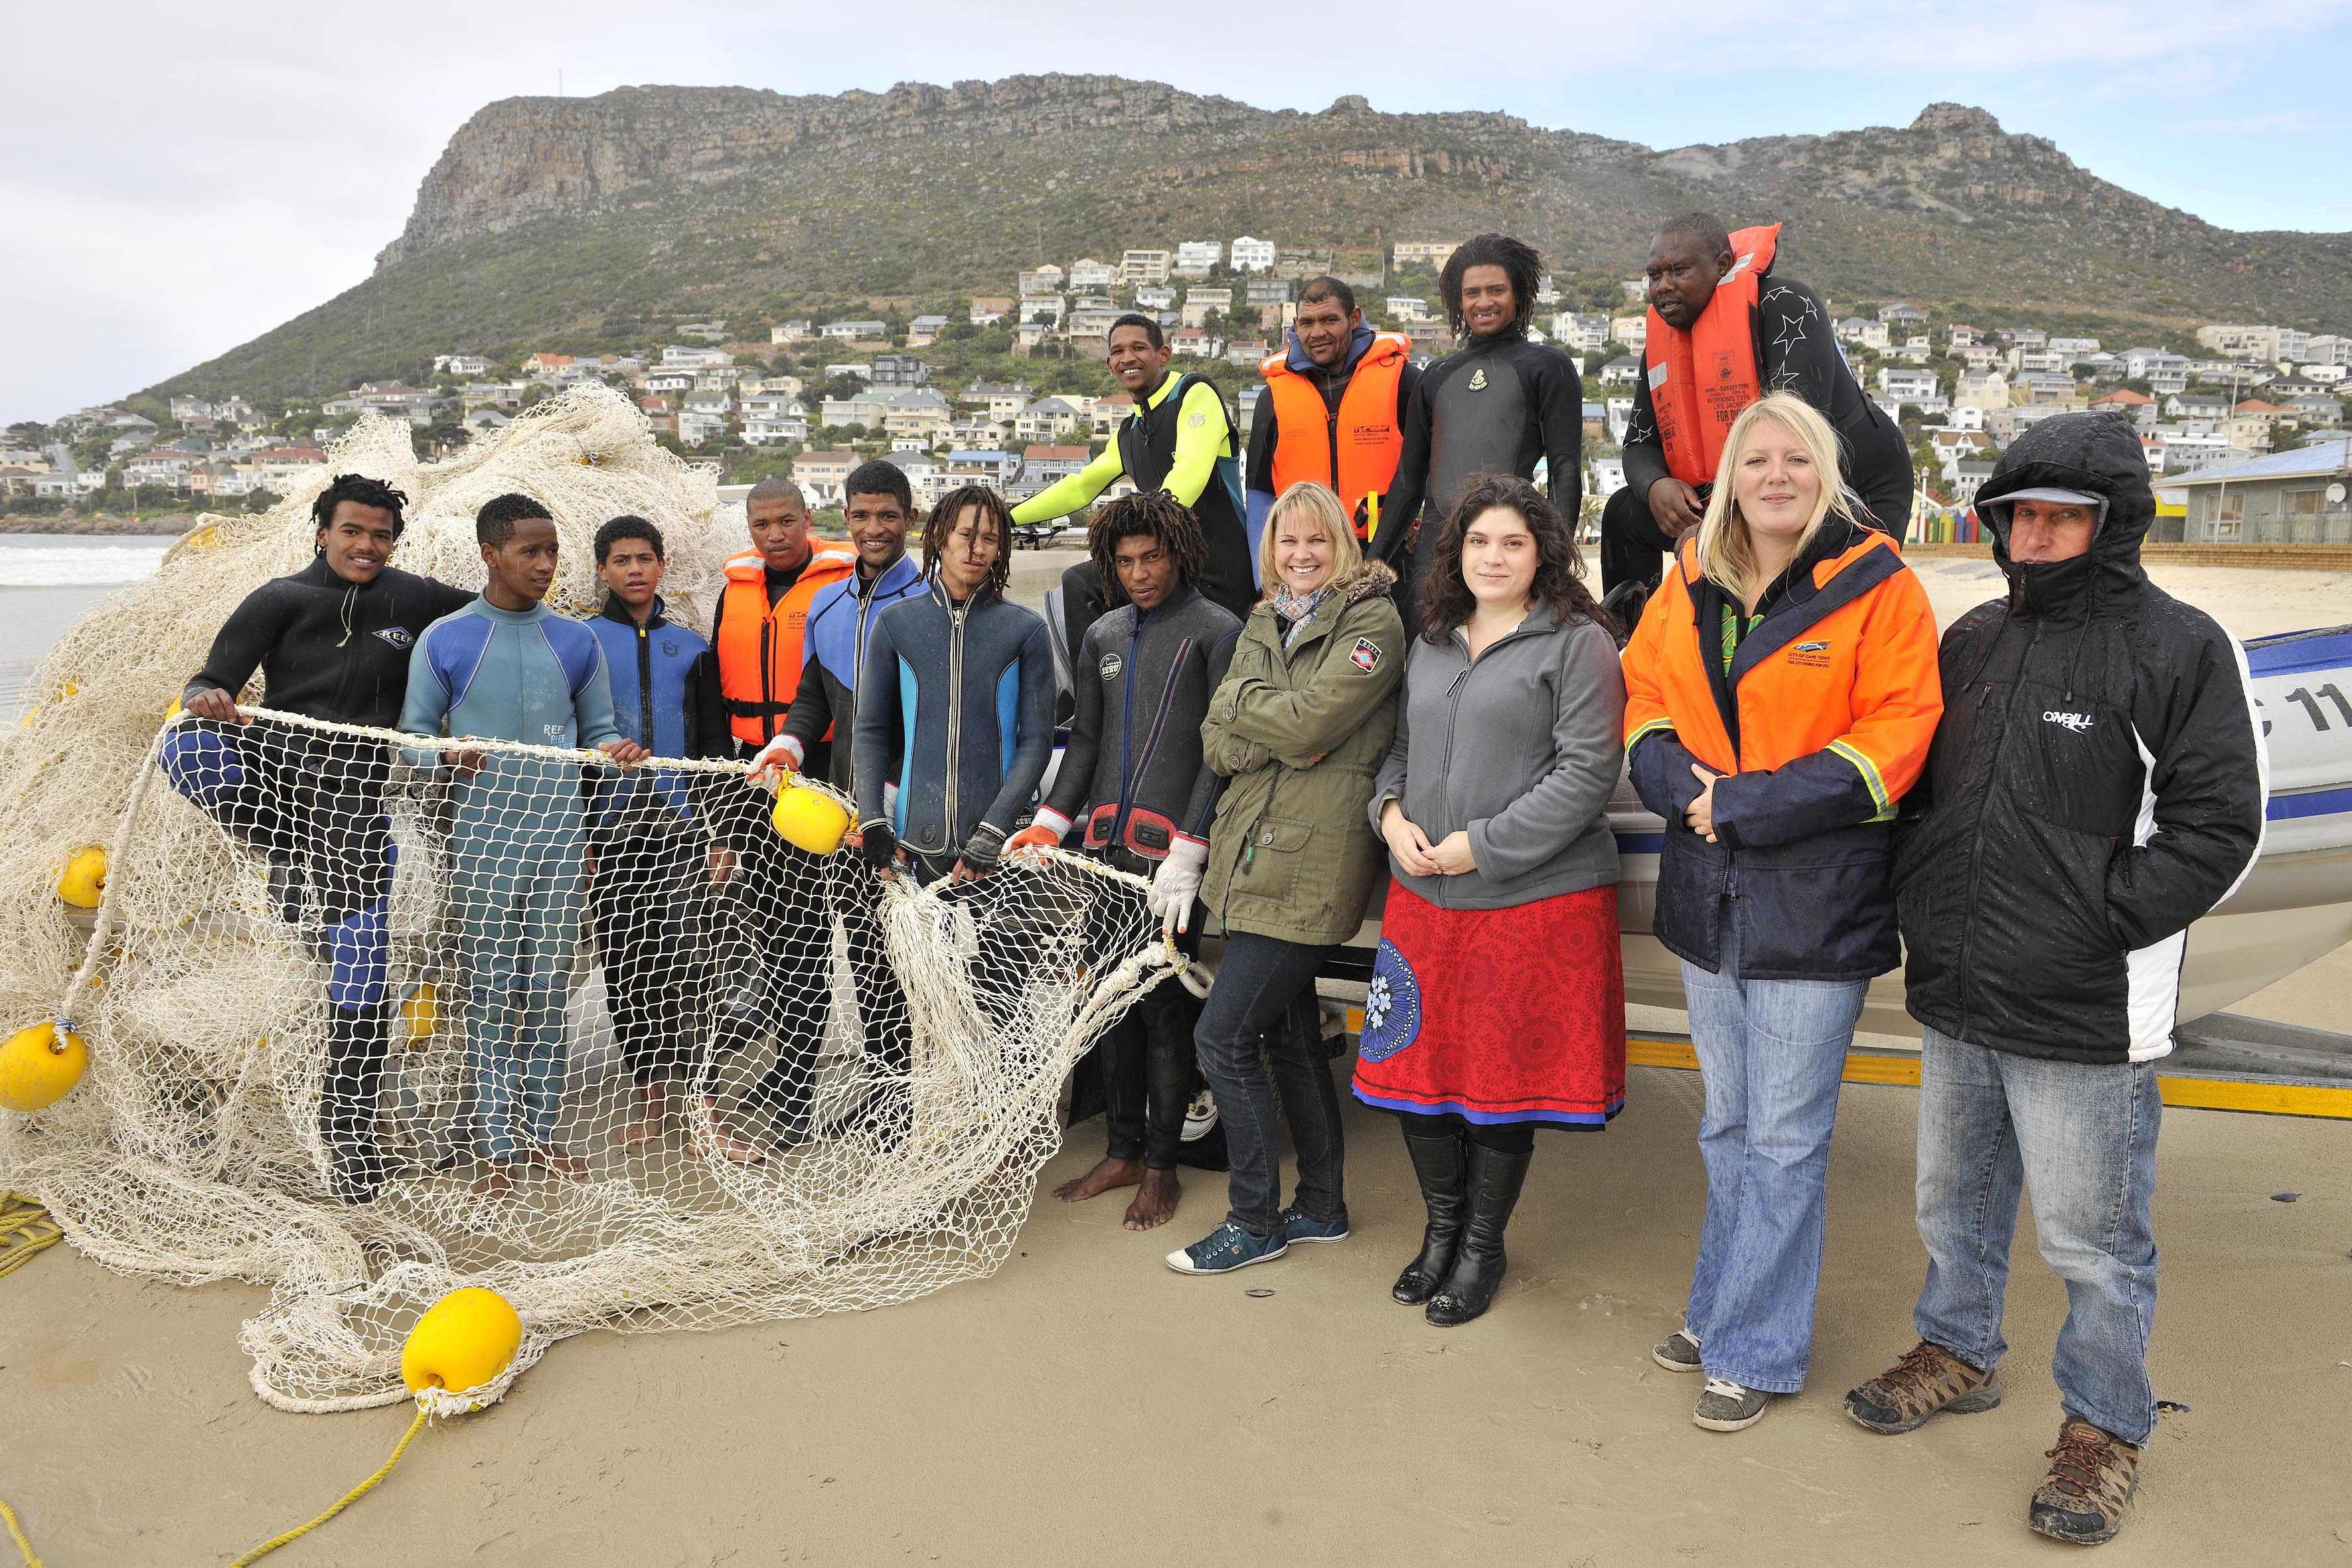 The team responsible for the successful Fish Hoek shark exclusion barrier.